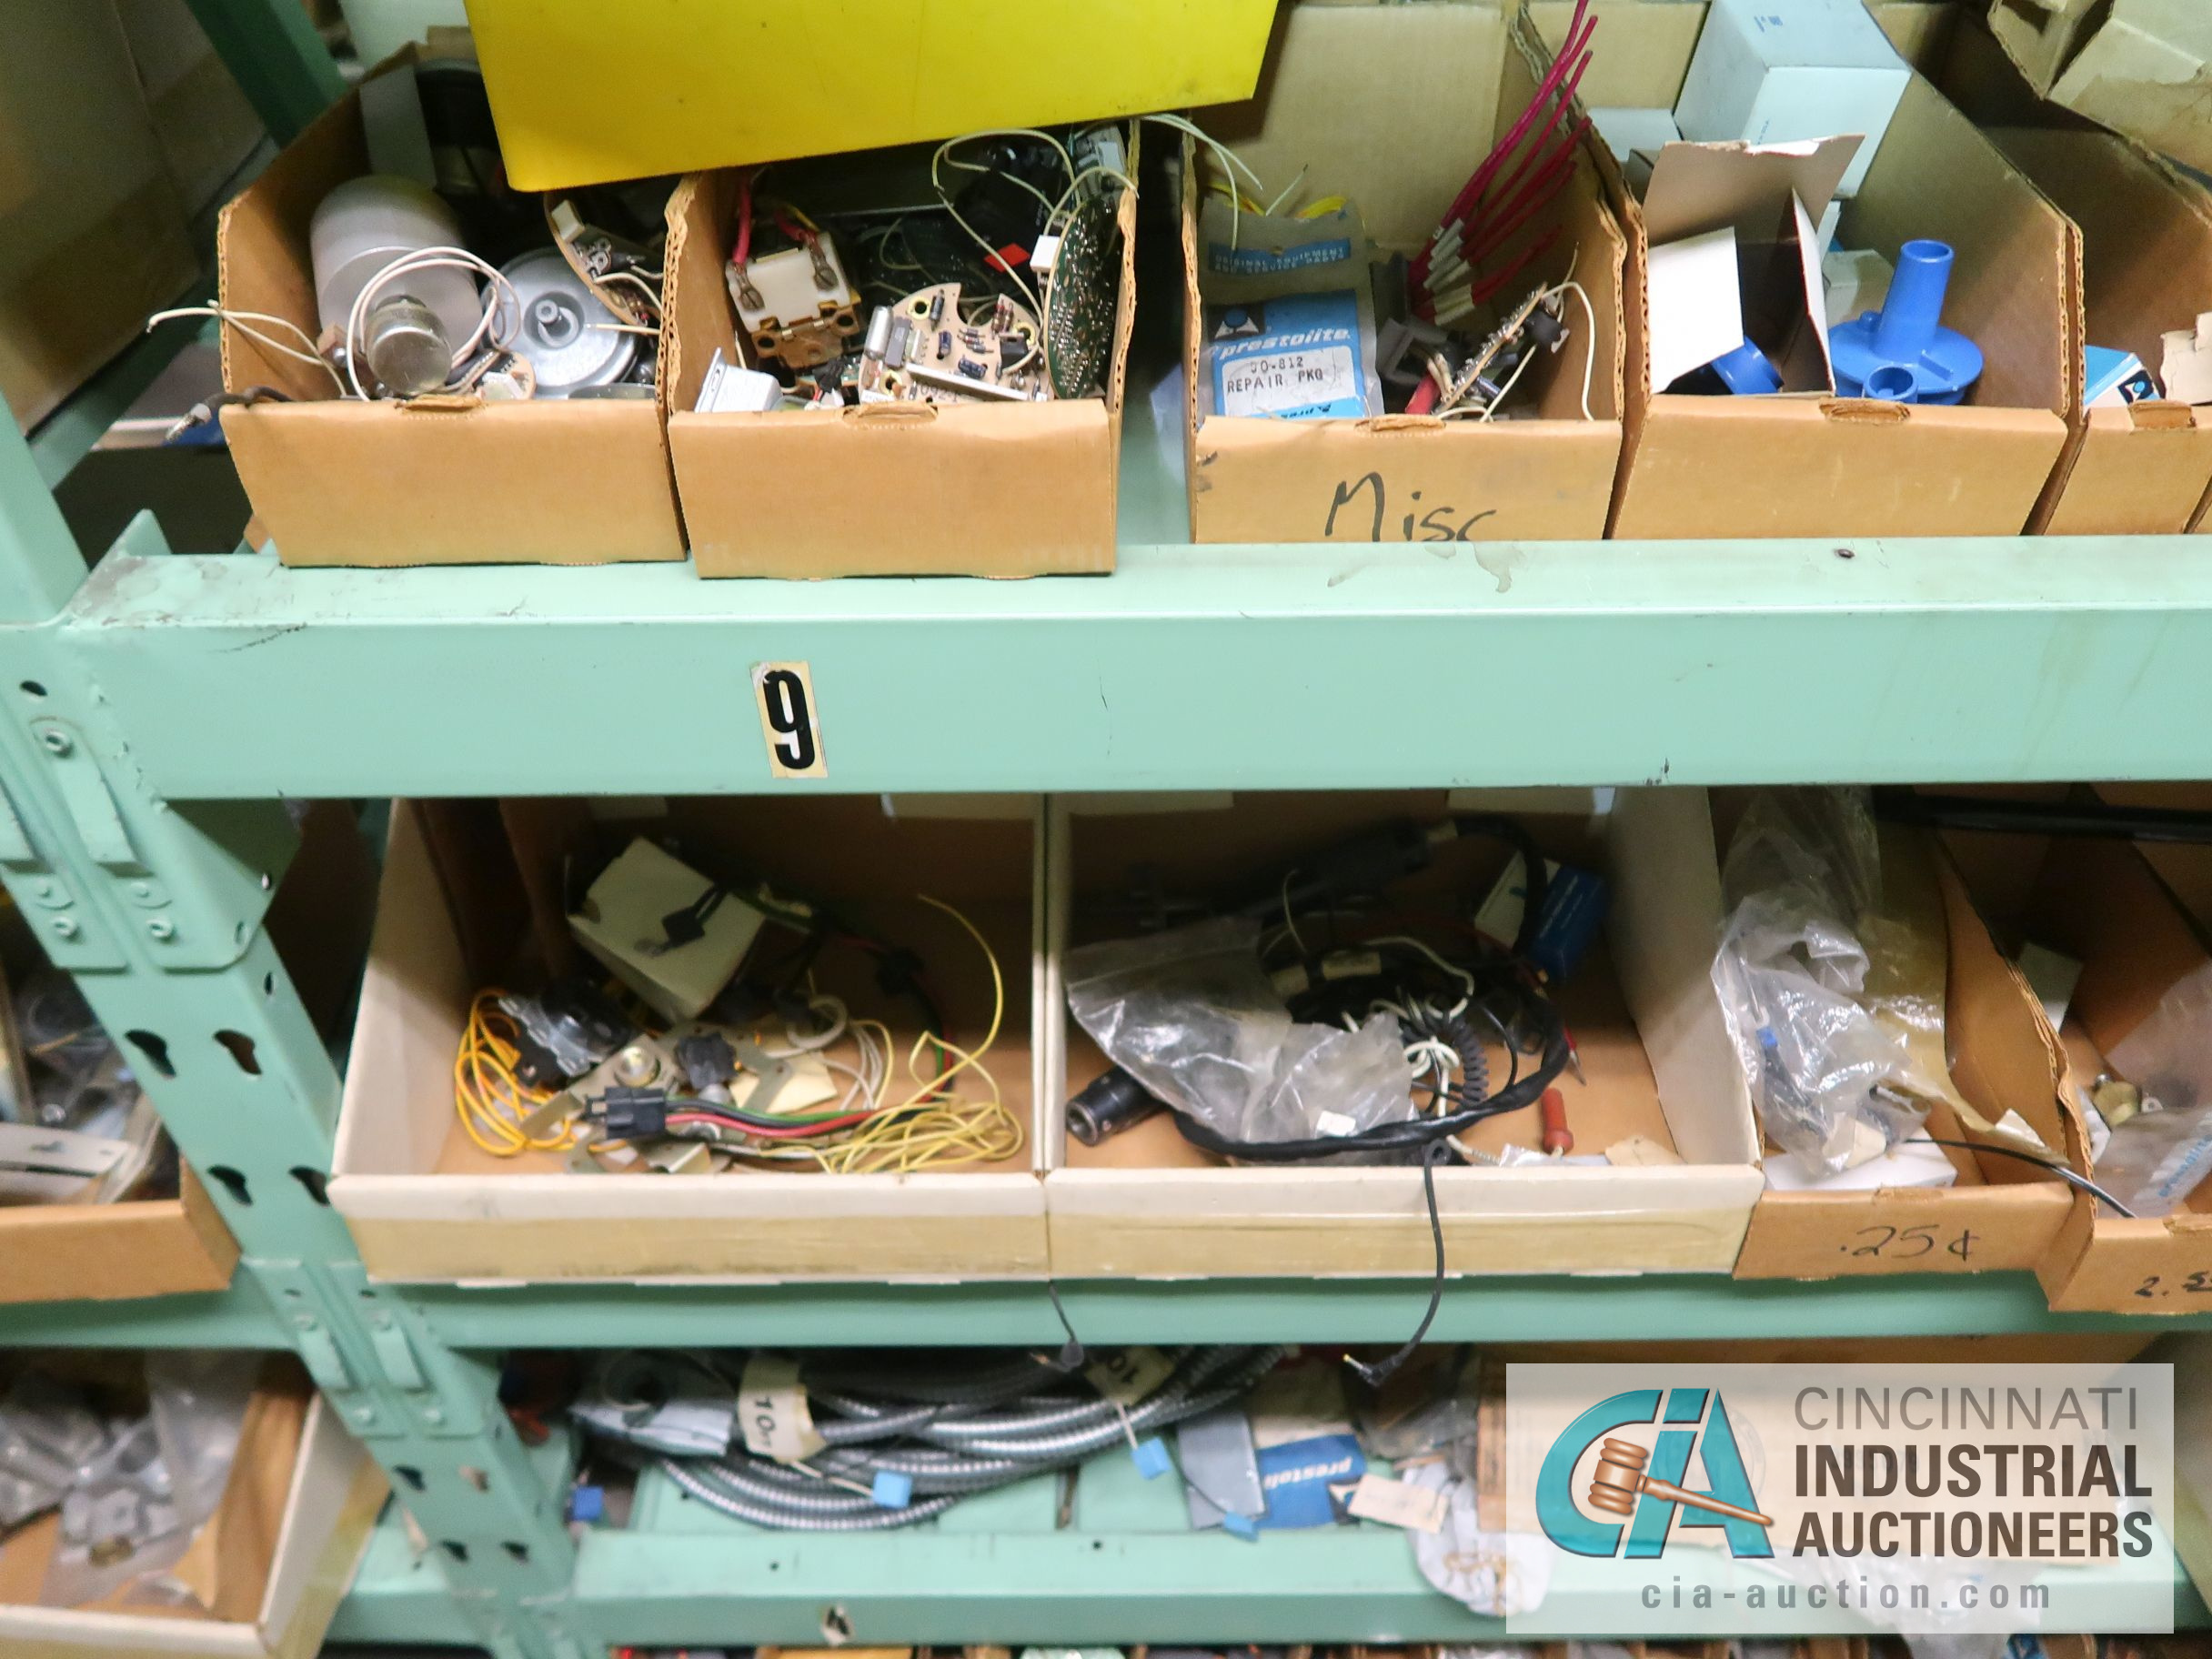 CONTENTS OF (5) RACKS INCLUDING MISCELLANEOUS AUTOMOTIVE PARTS, LIGHTS, FILTERS, ENGINE PARTS, RIMS, - Image 7 of 29